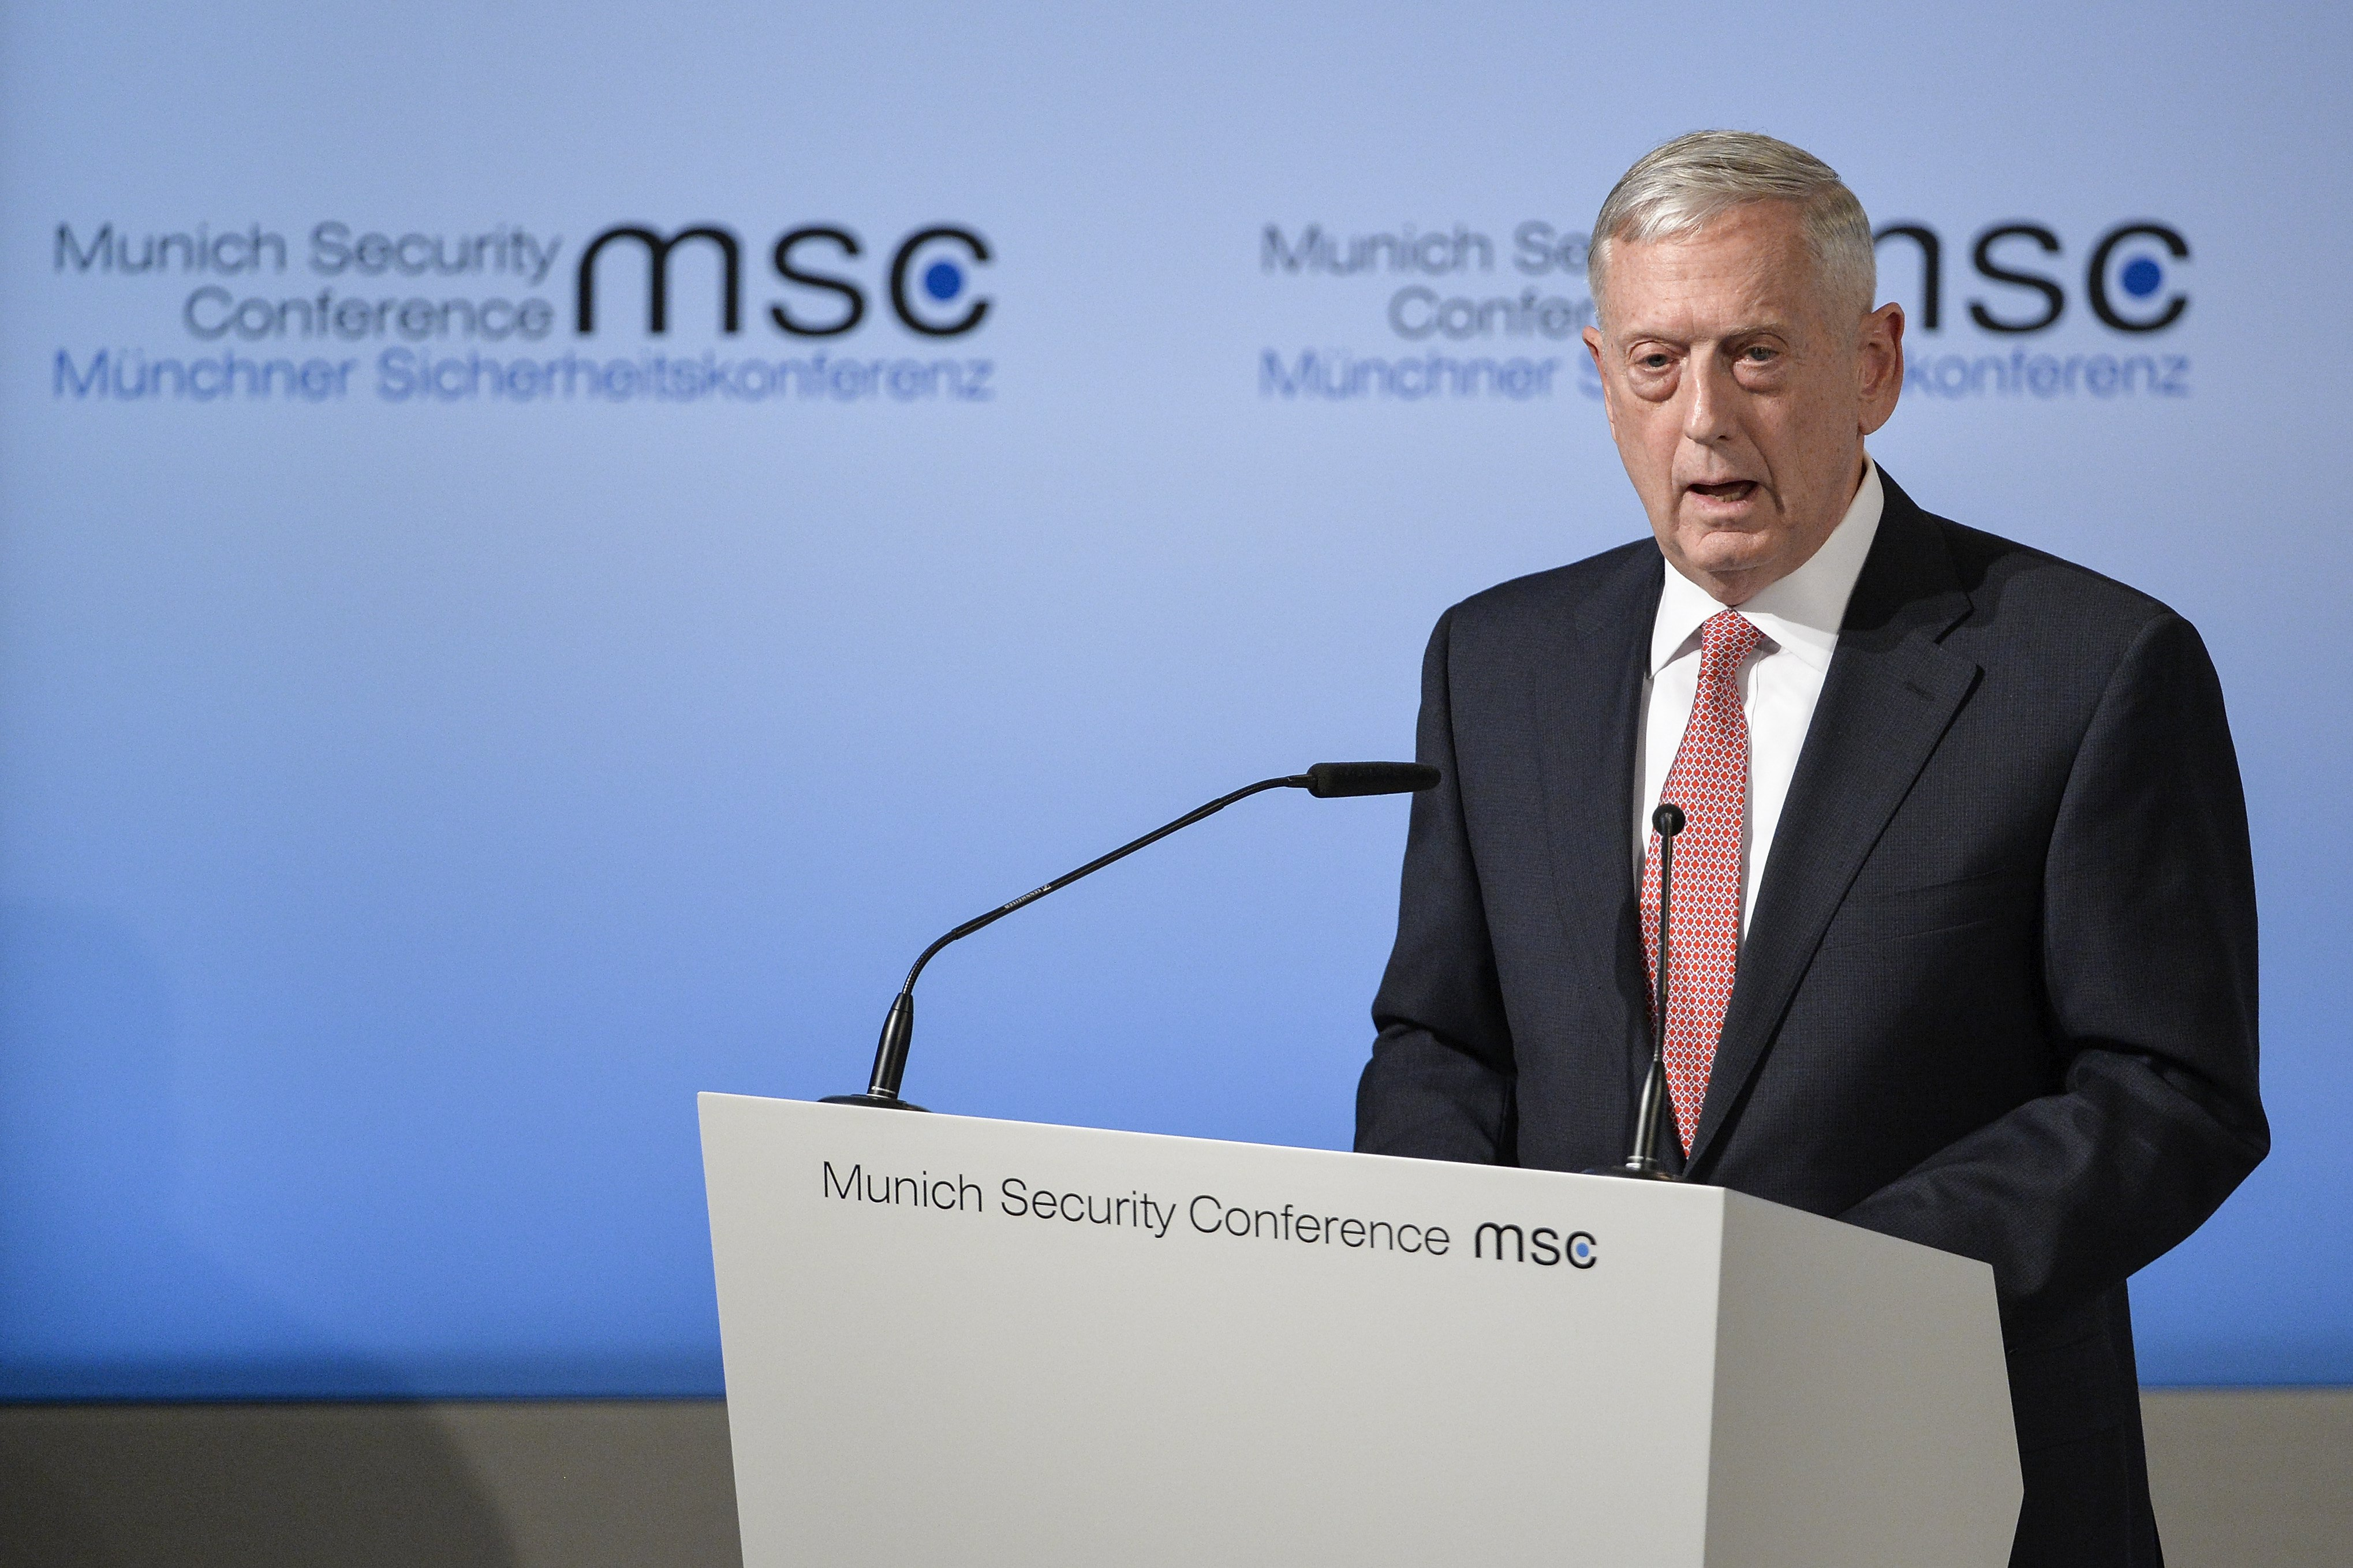 epa05799840 United States Secretary of Defense James Mattis speaks during the 53rd Munich Security Conference (MSC) in Munich, Germany, 17 February 2017. In their annual meeting, politicians and various experts and guests from around the world discuss issues surrounding global security from February 17 to 19. EPA/PHILIPP GUELLAND